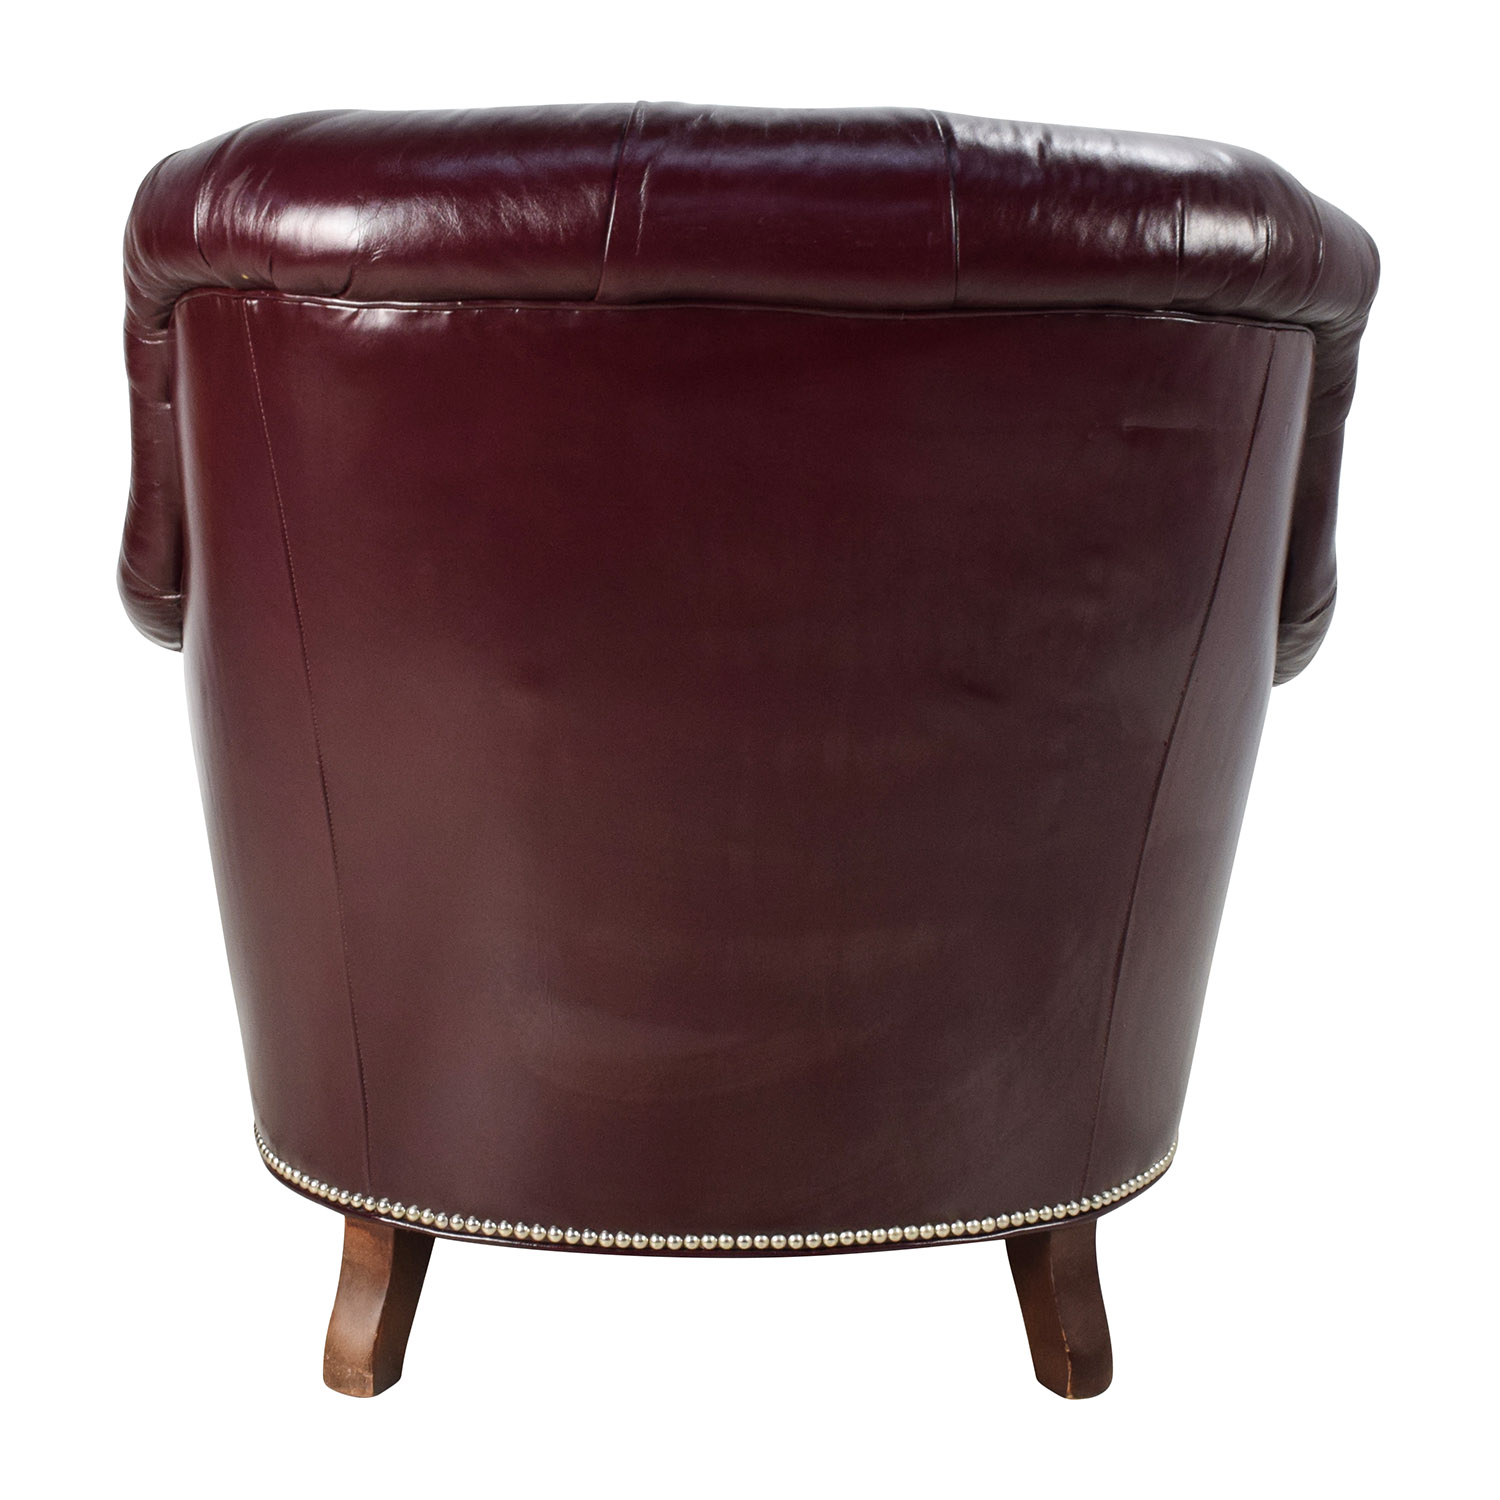 Tufted Leather Chair 90 Off Baker Furniture Baker Tufted Leather Lounge